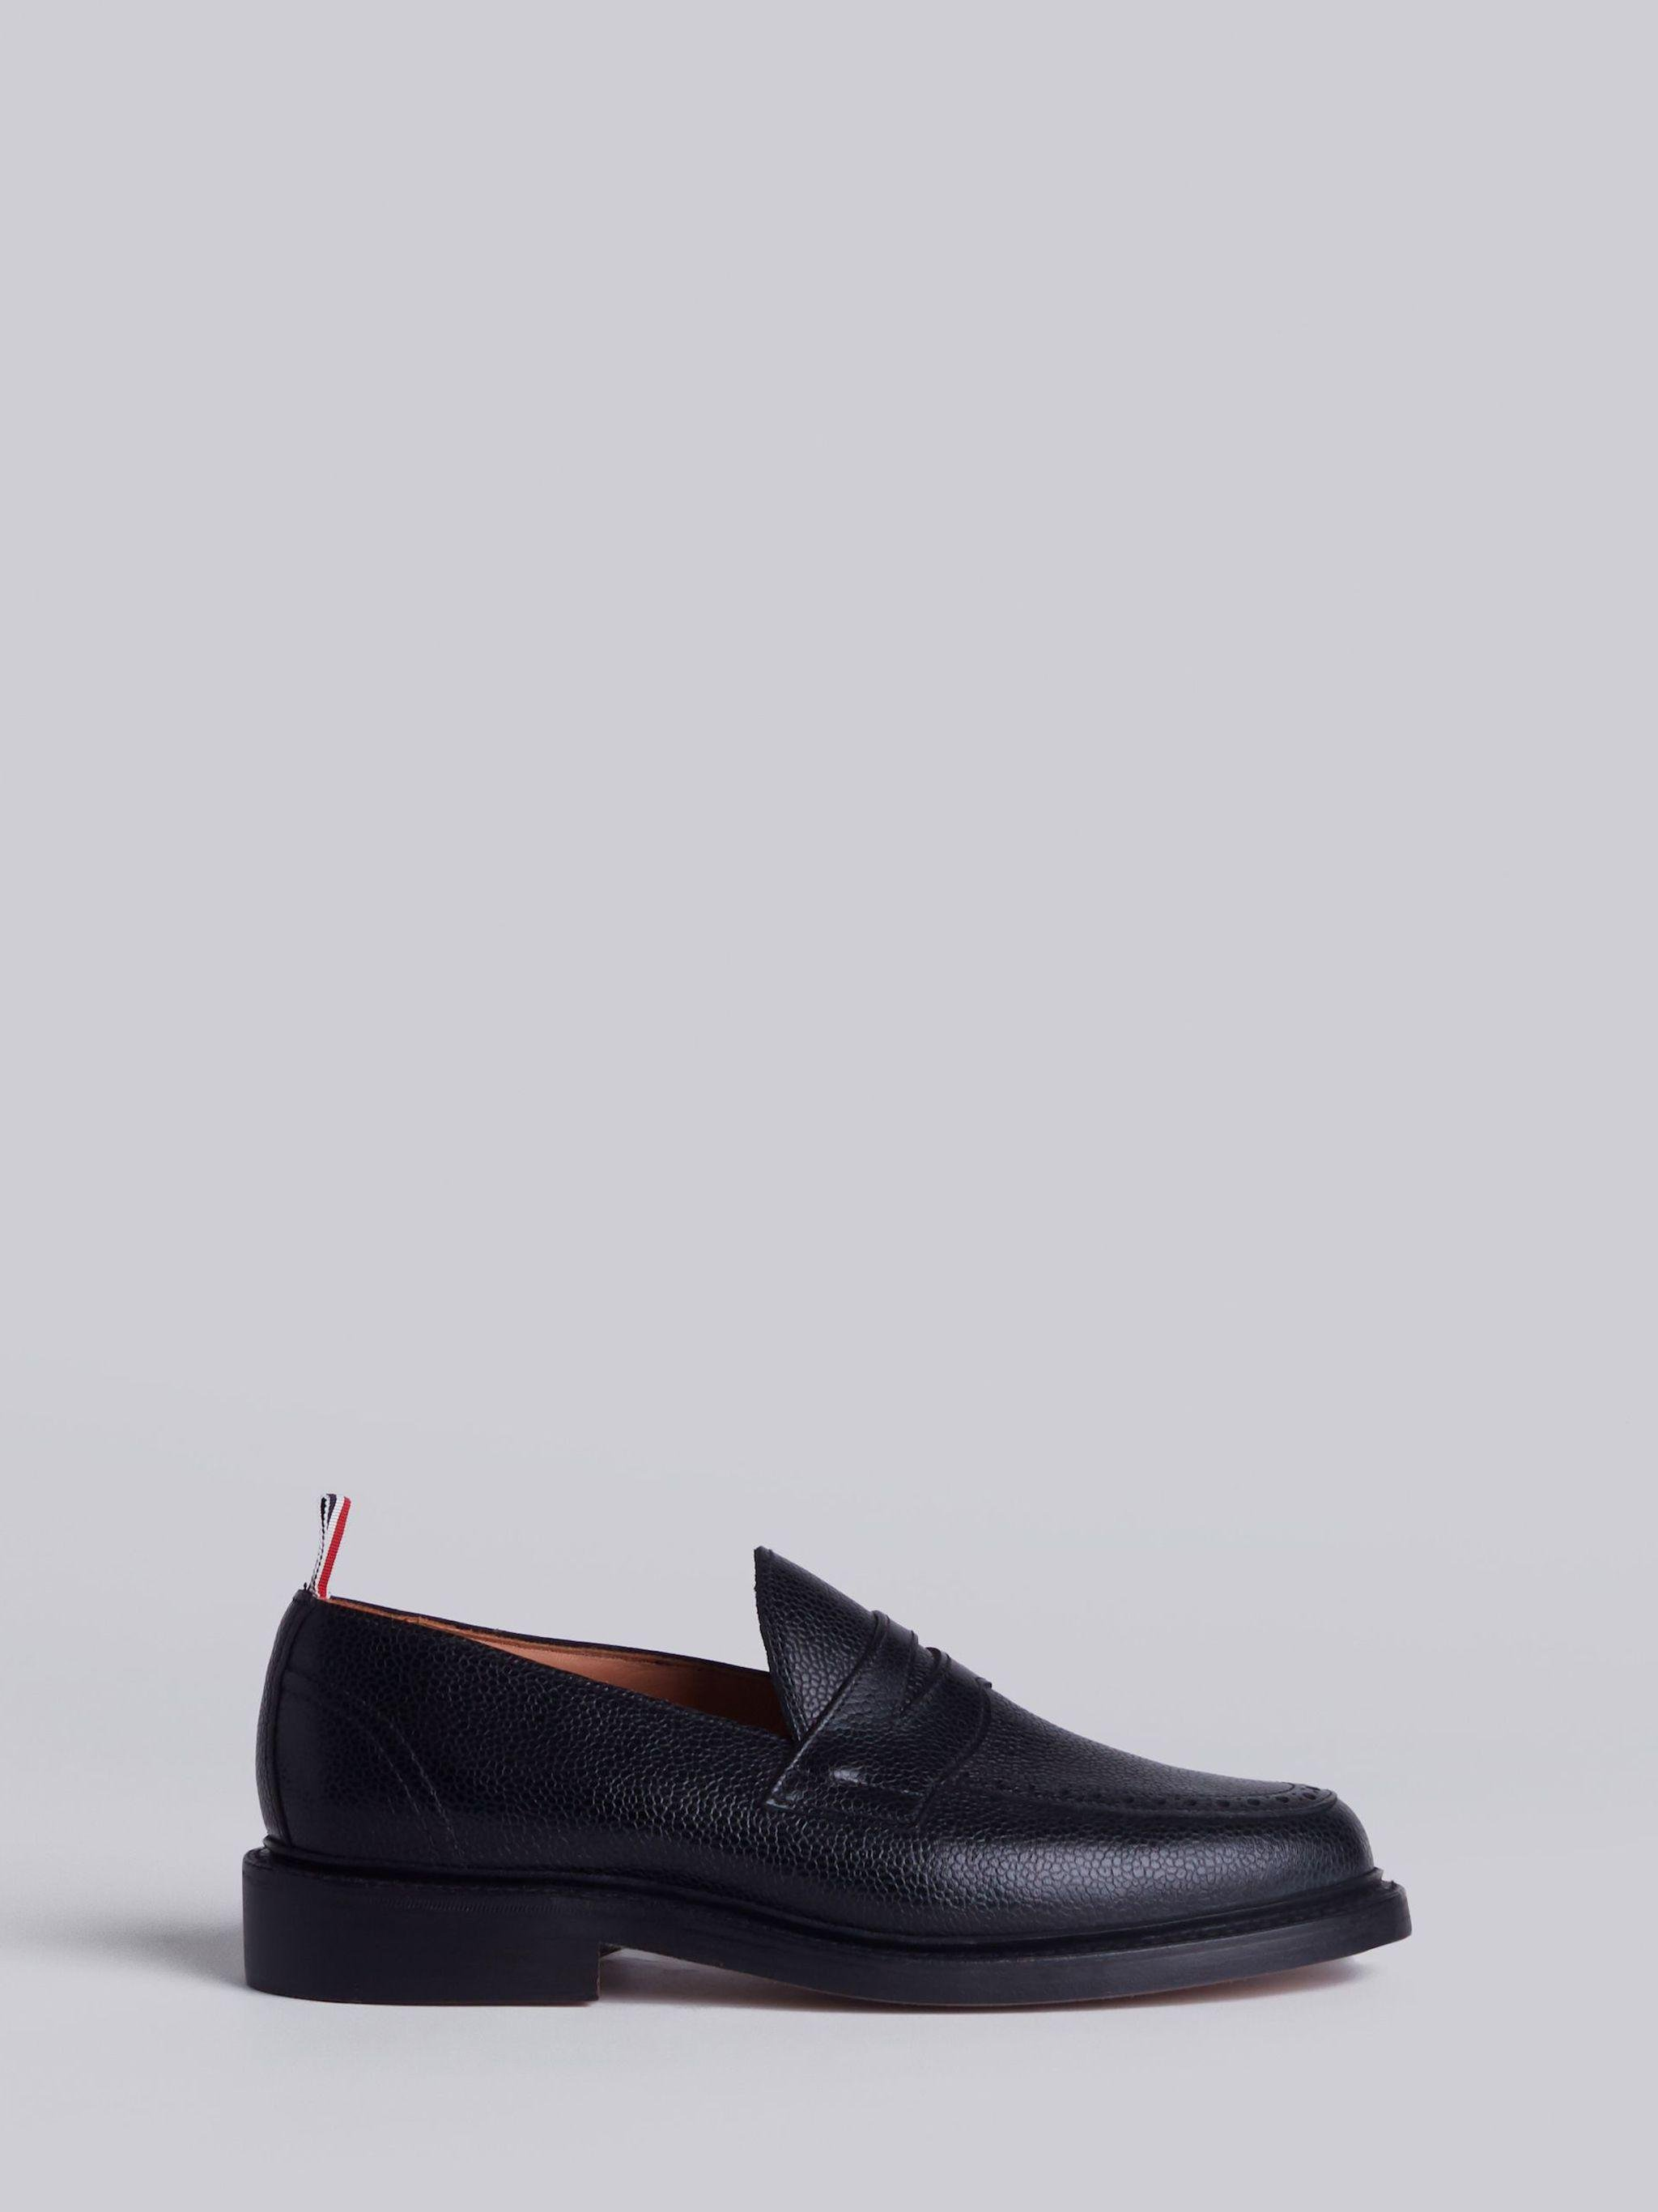 Penny Loafer With Leather Sole In Black Pebble Grain